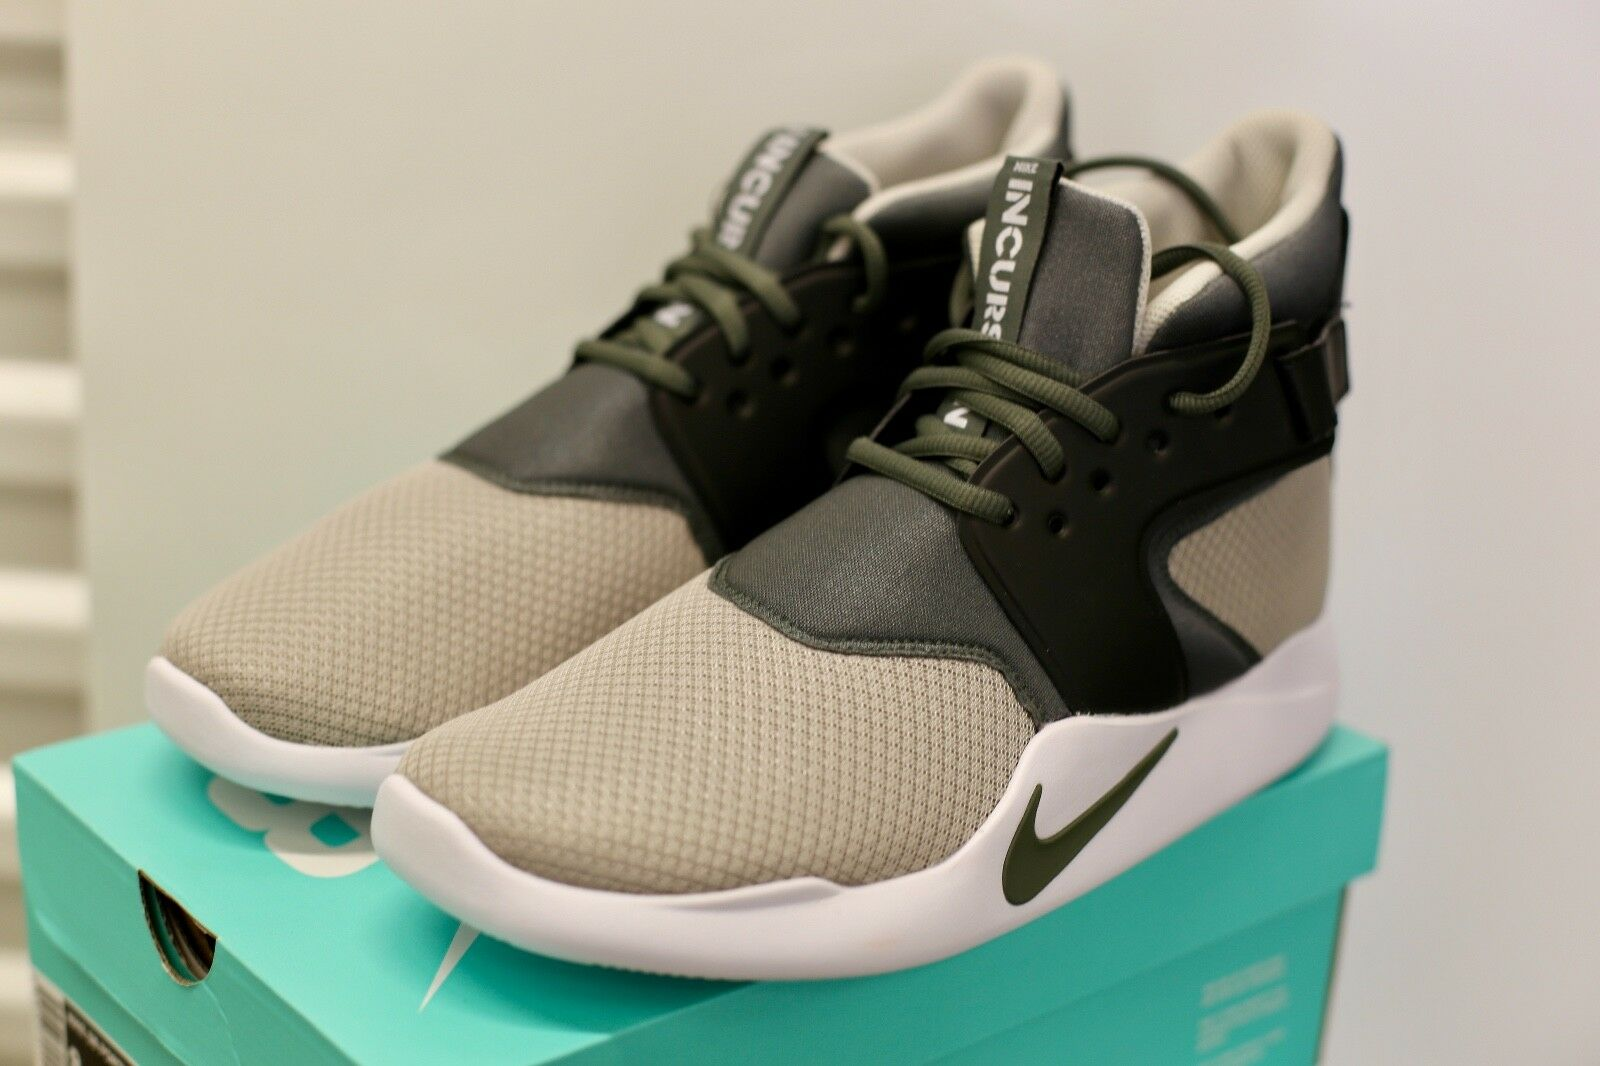 Nike Incursion Mid Pale Grey/River Rock BRAND NEW! Sizes 8.5,9,10.5,11.5